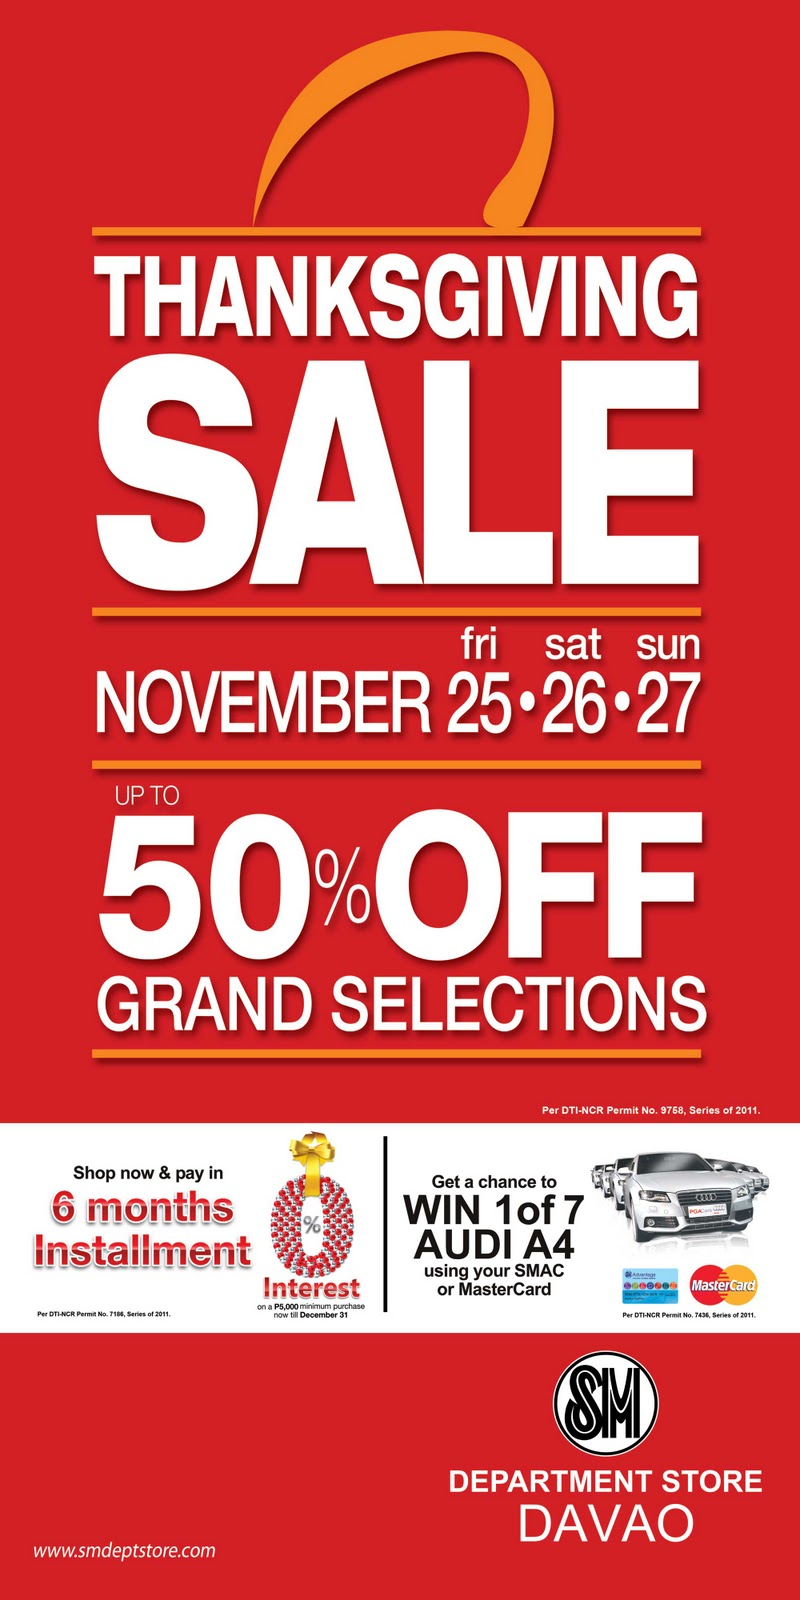 SM City Davao Thanksgiving Sale on November 25-27, 2011